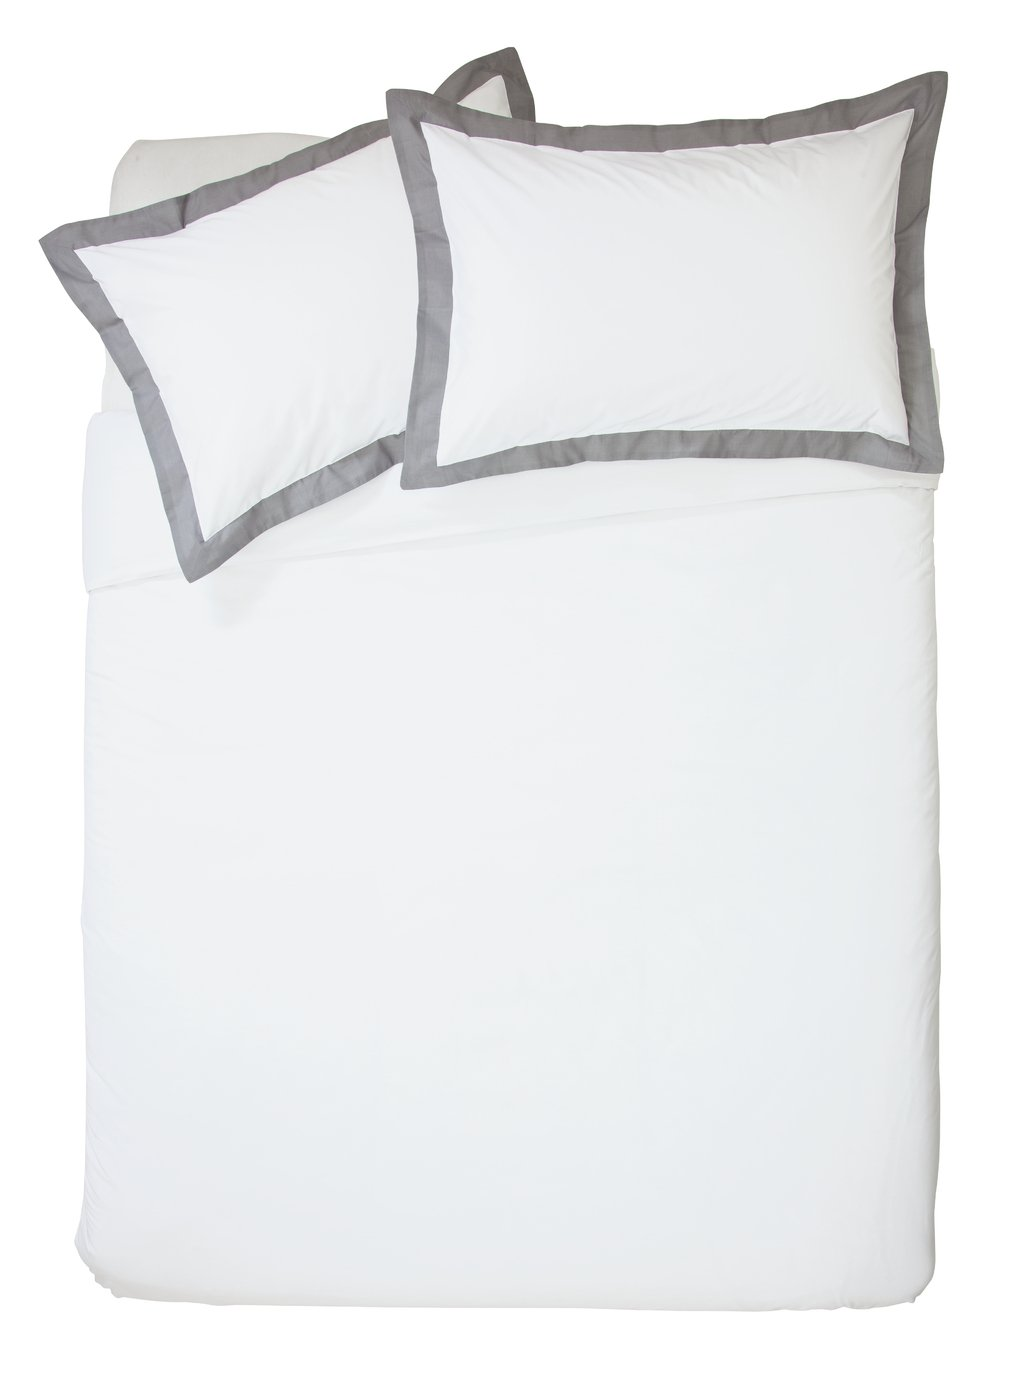 Argos Home White and Grey Oxford Bedding Set - Superking